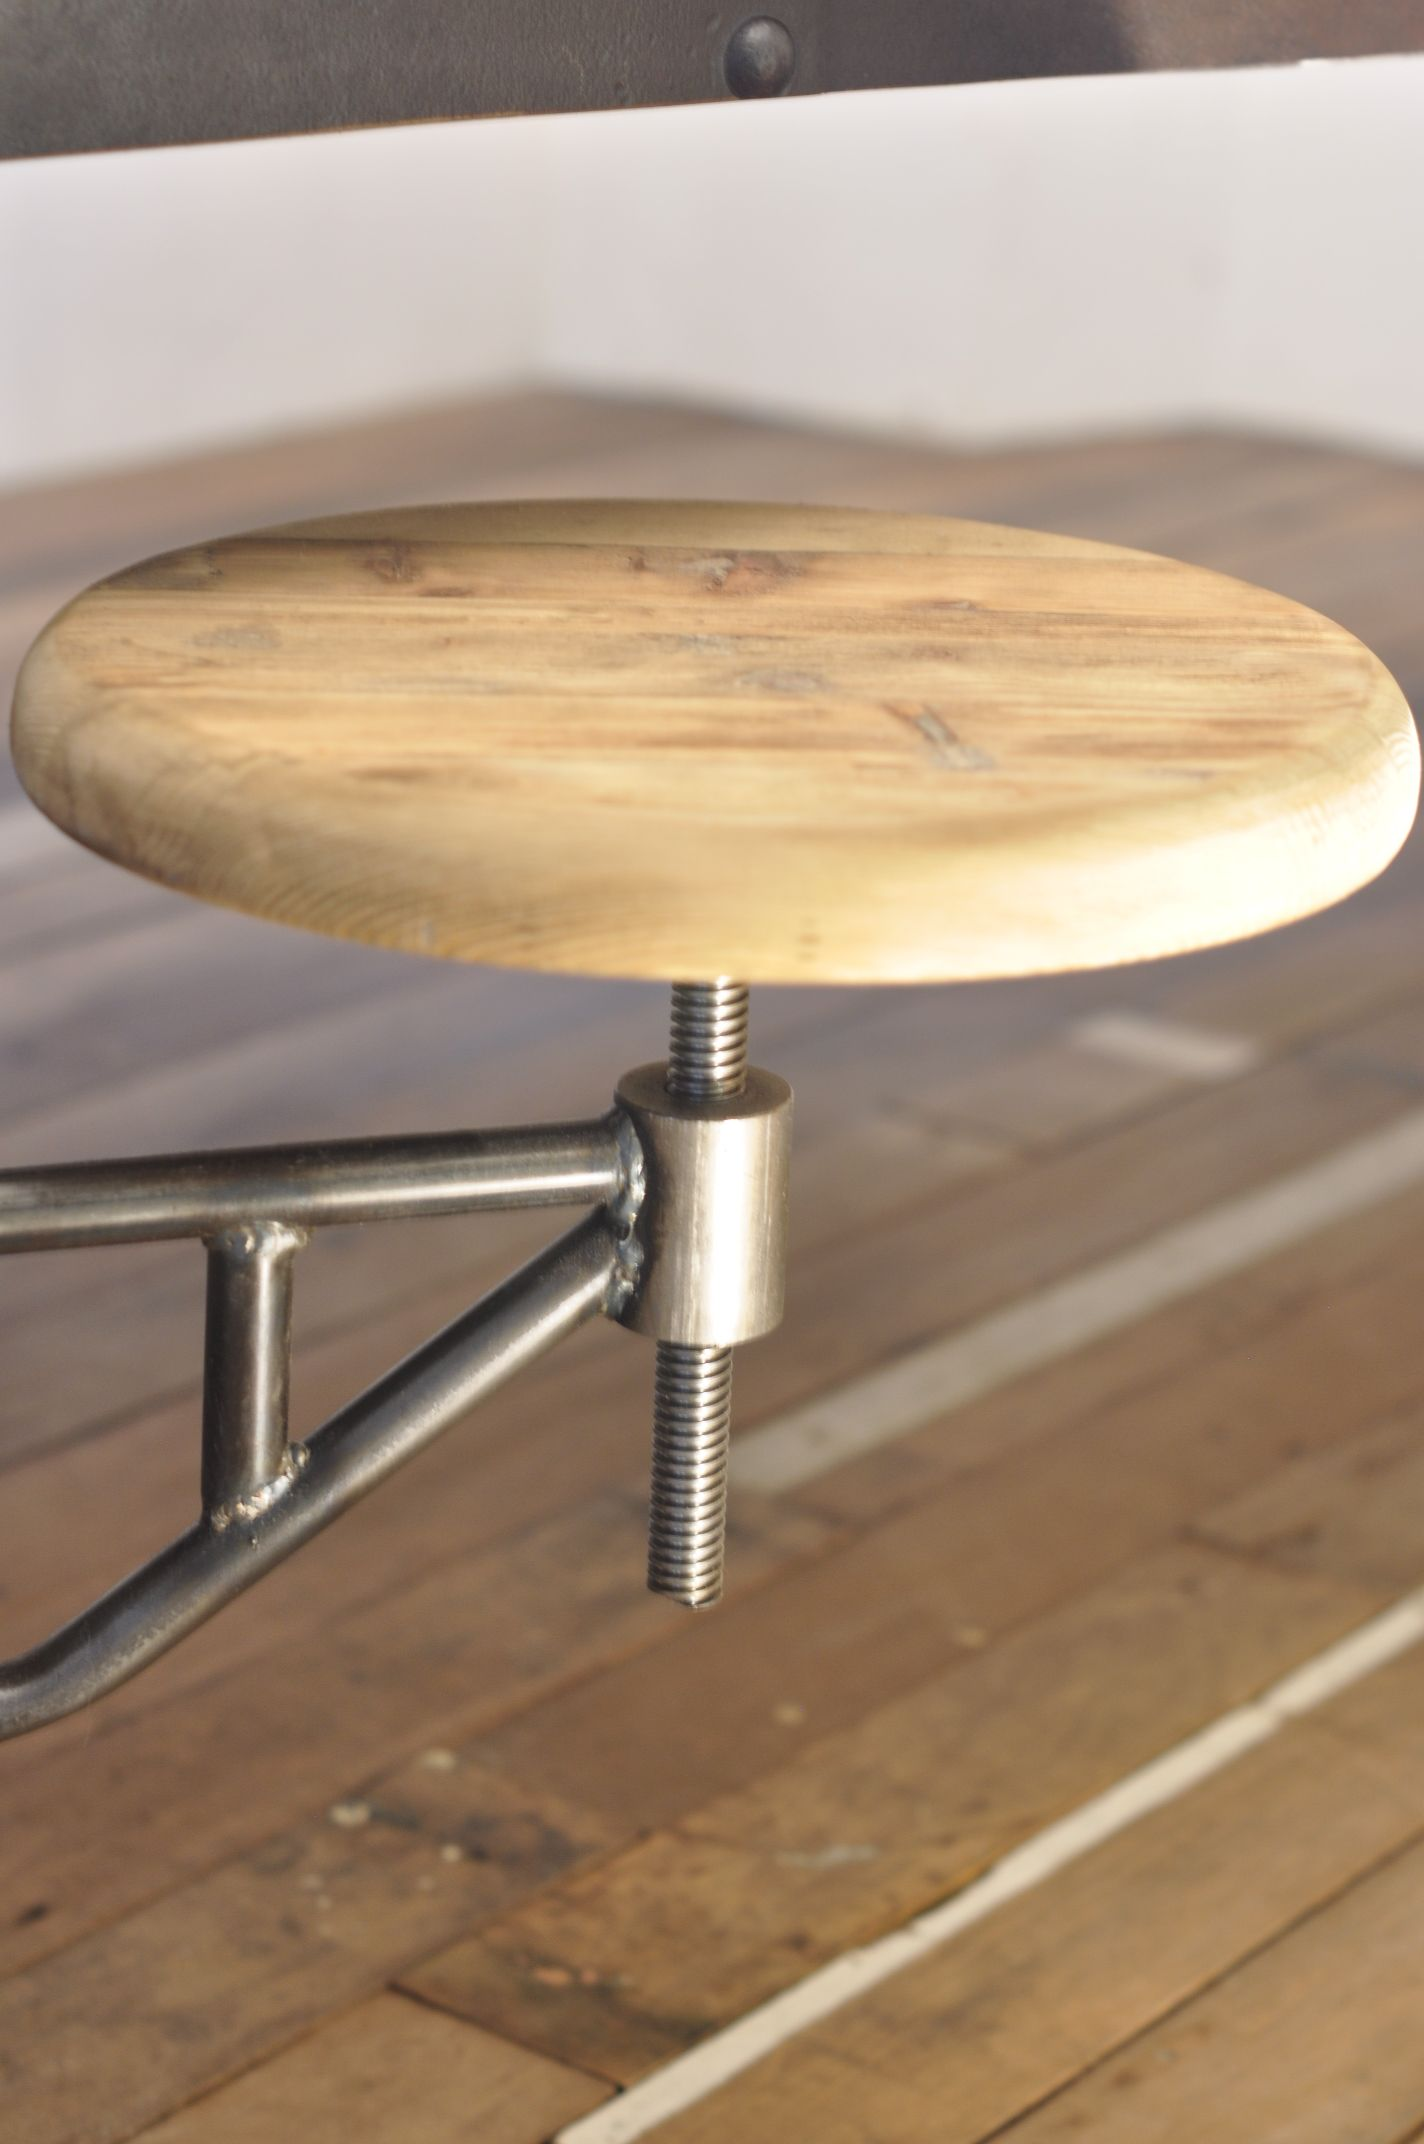 Big Handcrafted Industrial Table Made Of Old Water Tank. Patinated Metal  With Rivets. Old Oak Top And Legs. Restaurant Or Bar Table.